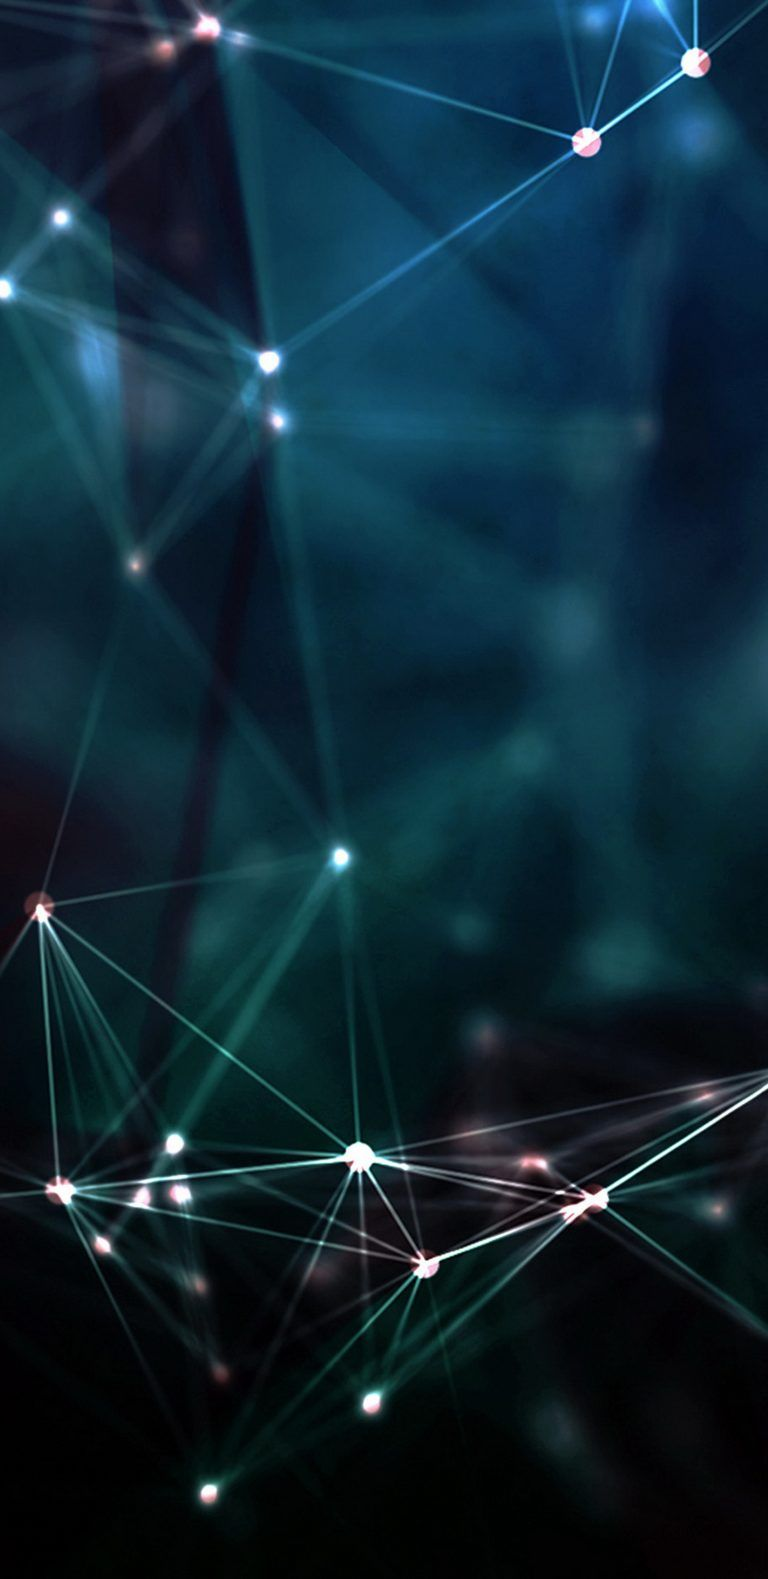 3d Dark Background With Lights For Samsung Galaxy S9 Wallpaper Hd Wallpapers Wallpapers Download High Resolution Wallpapers Dark Phone Wallpapers Samsung Galaxy S8 Wallpapers Dark Background Wallpaper